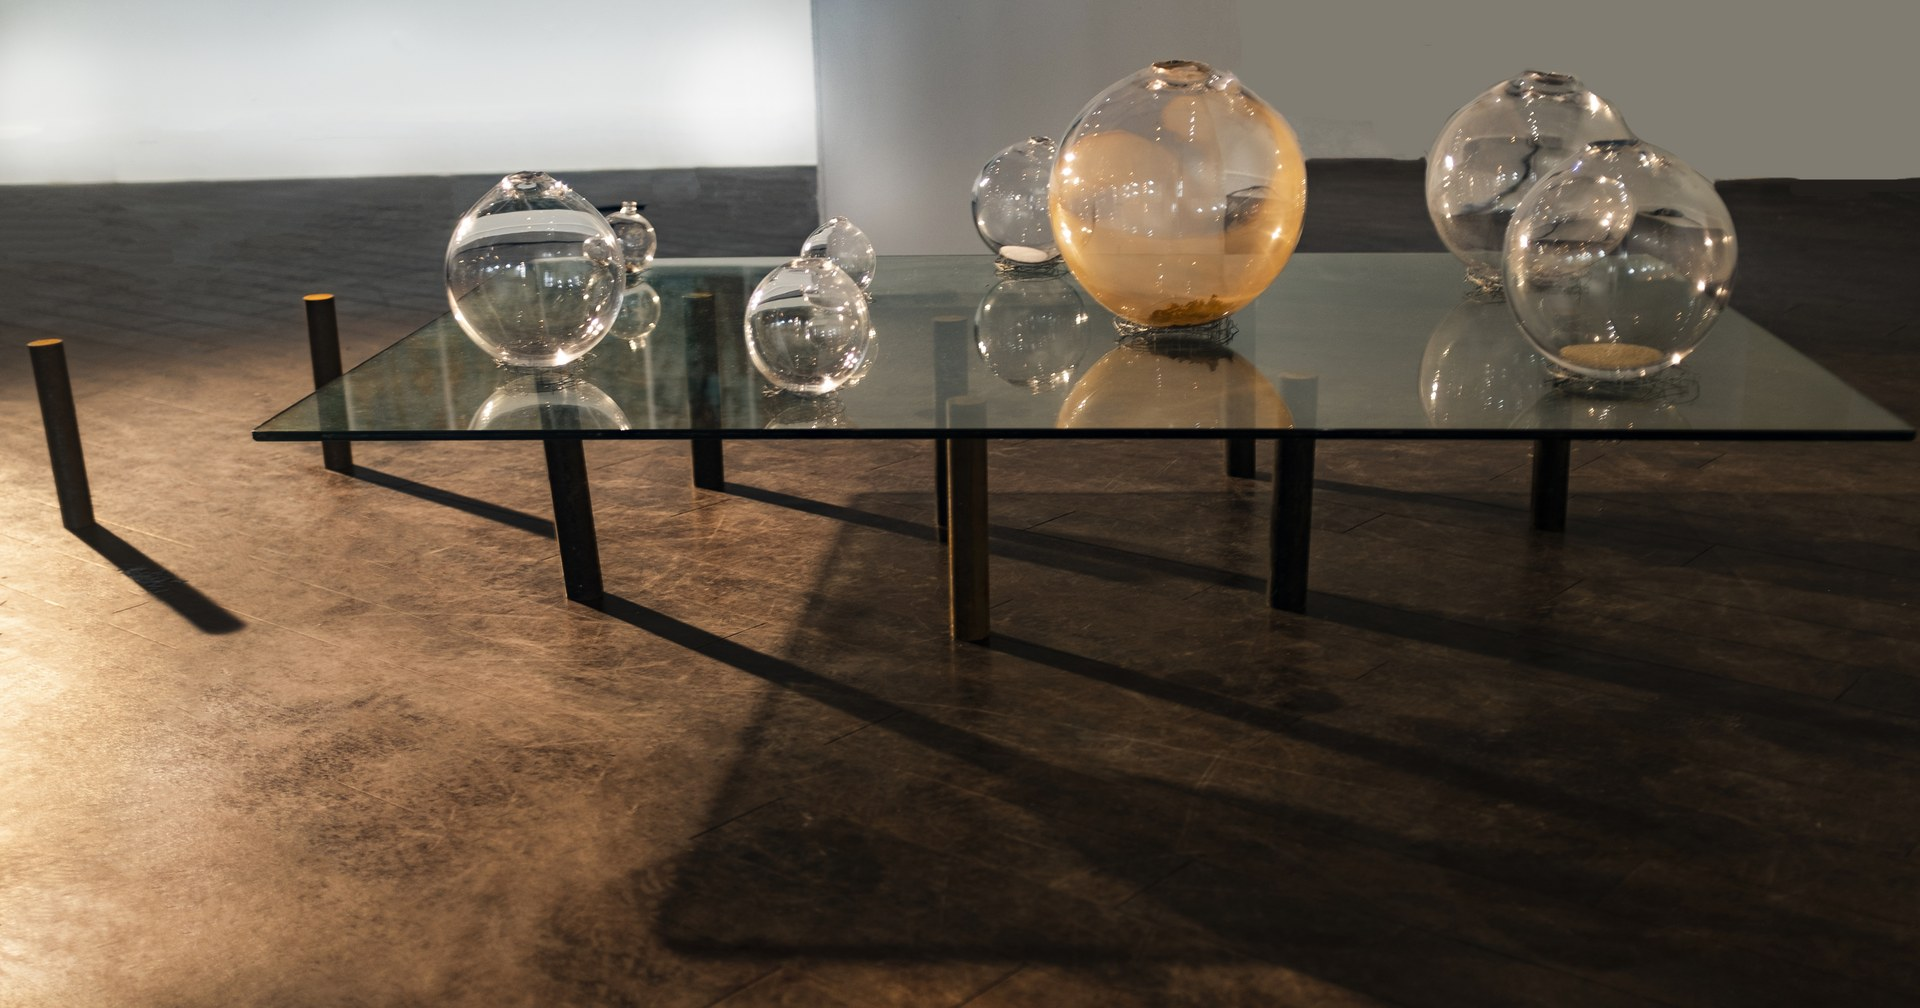 GLOBES - INFINITY PARTICLES